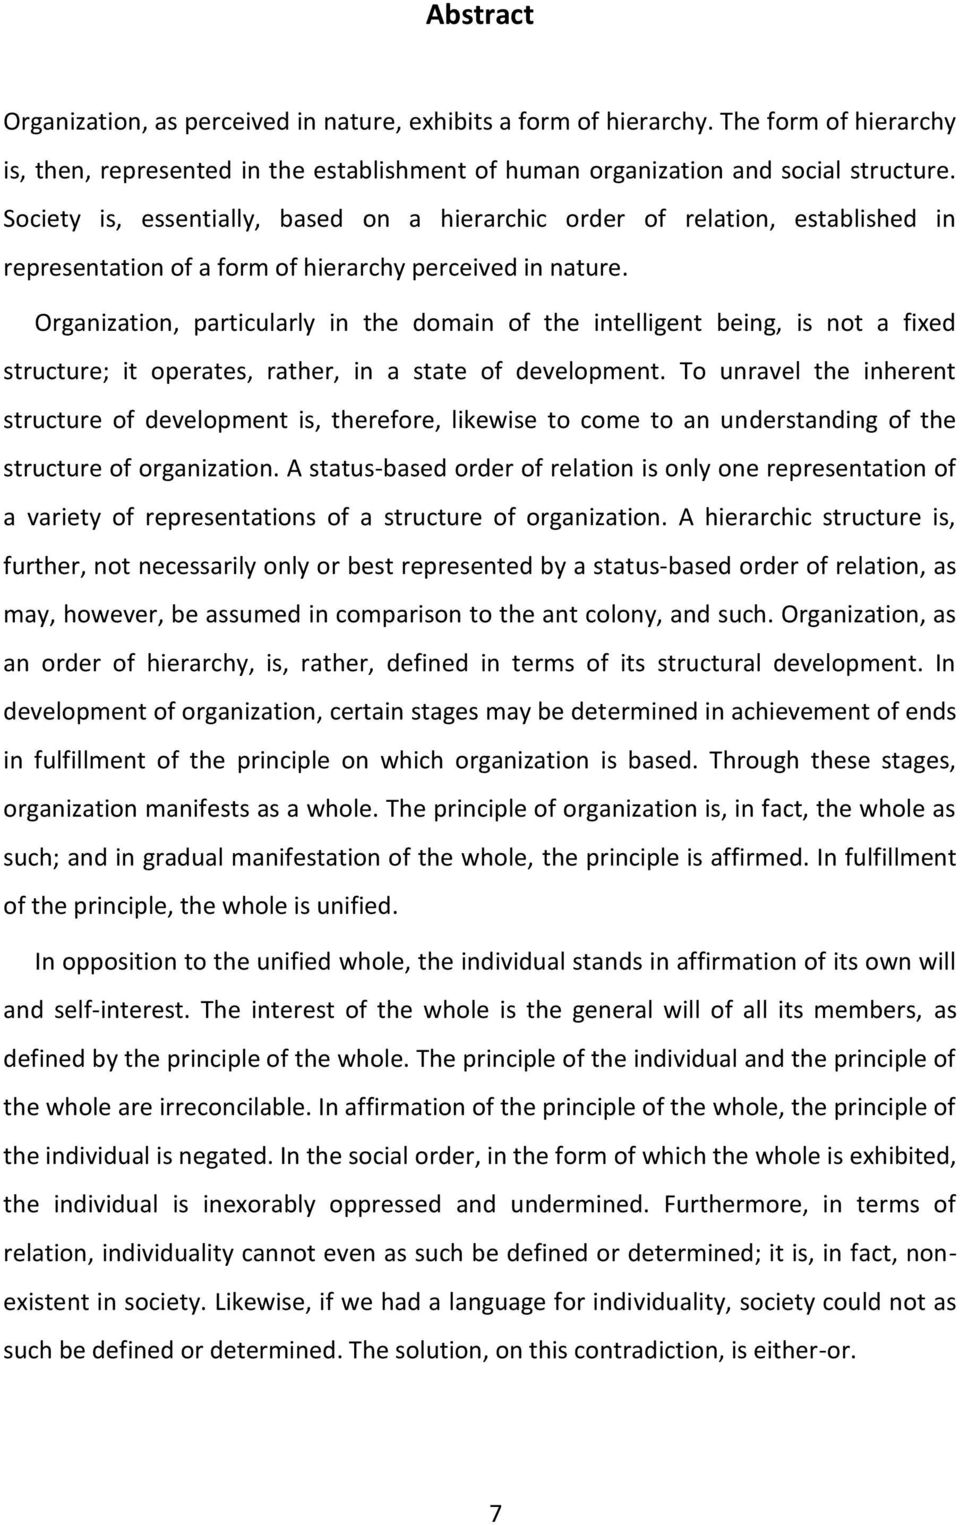 Organization, particularly in the domain of the intelligent being, is not a fixed structure; it operates, rather, in a state of development.